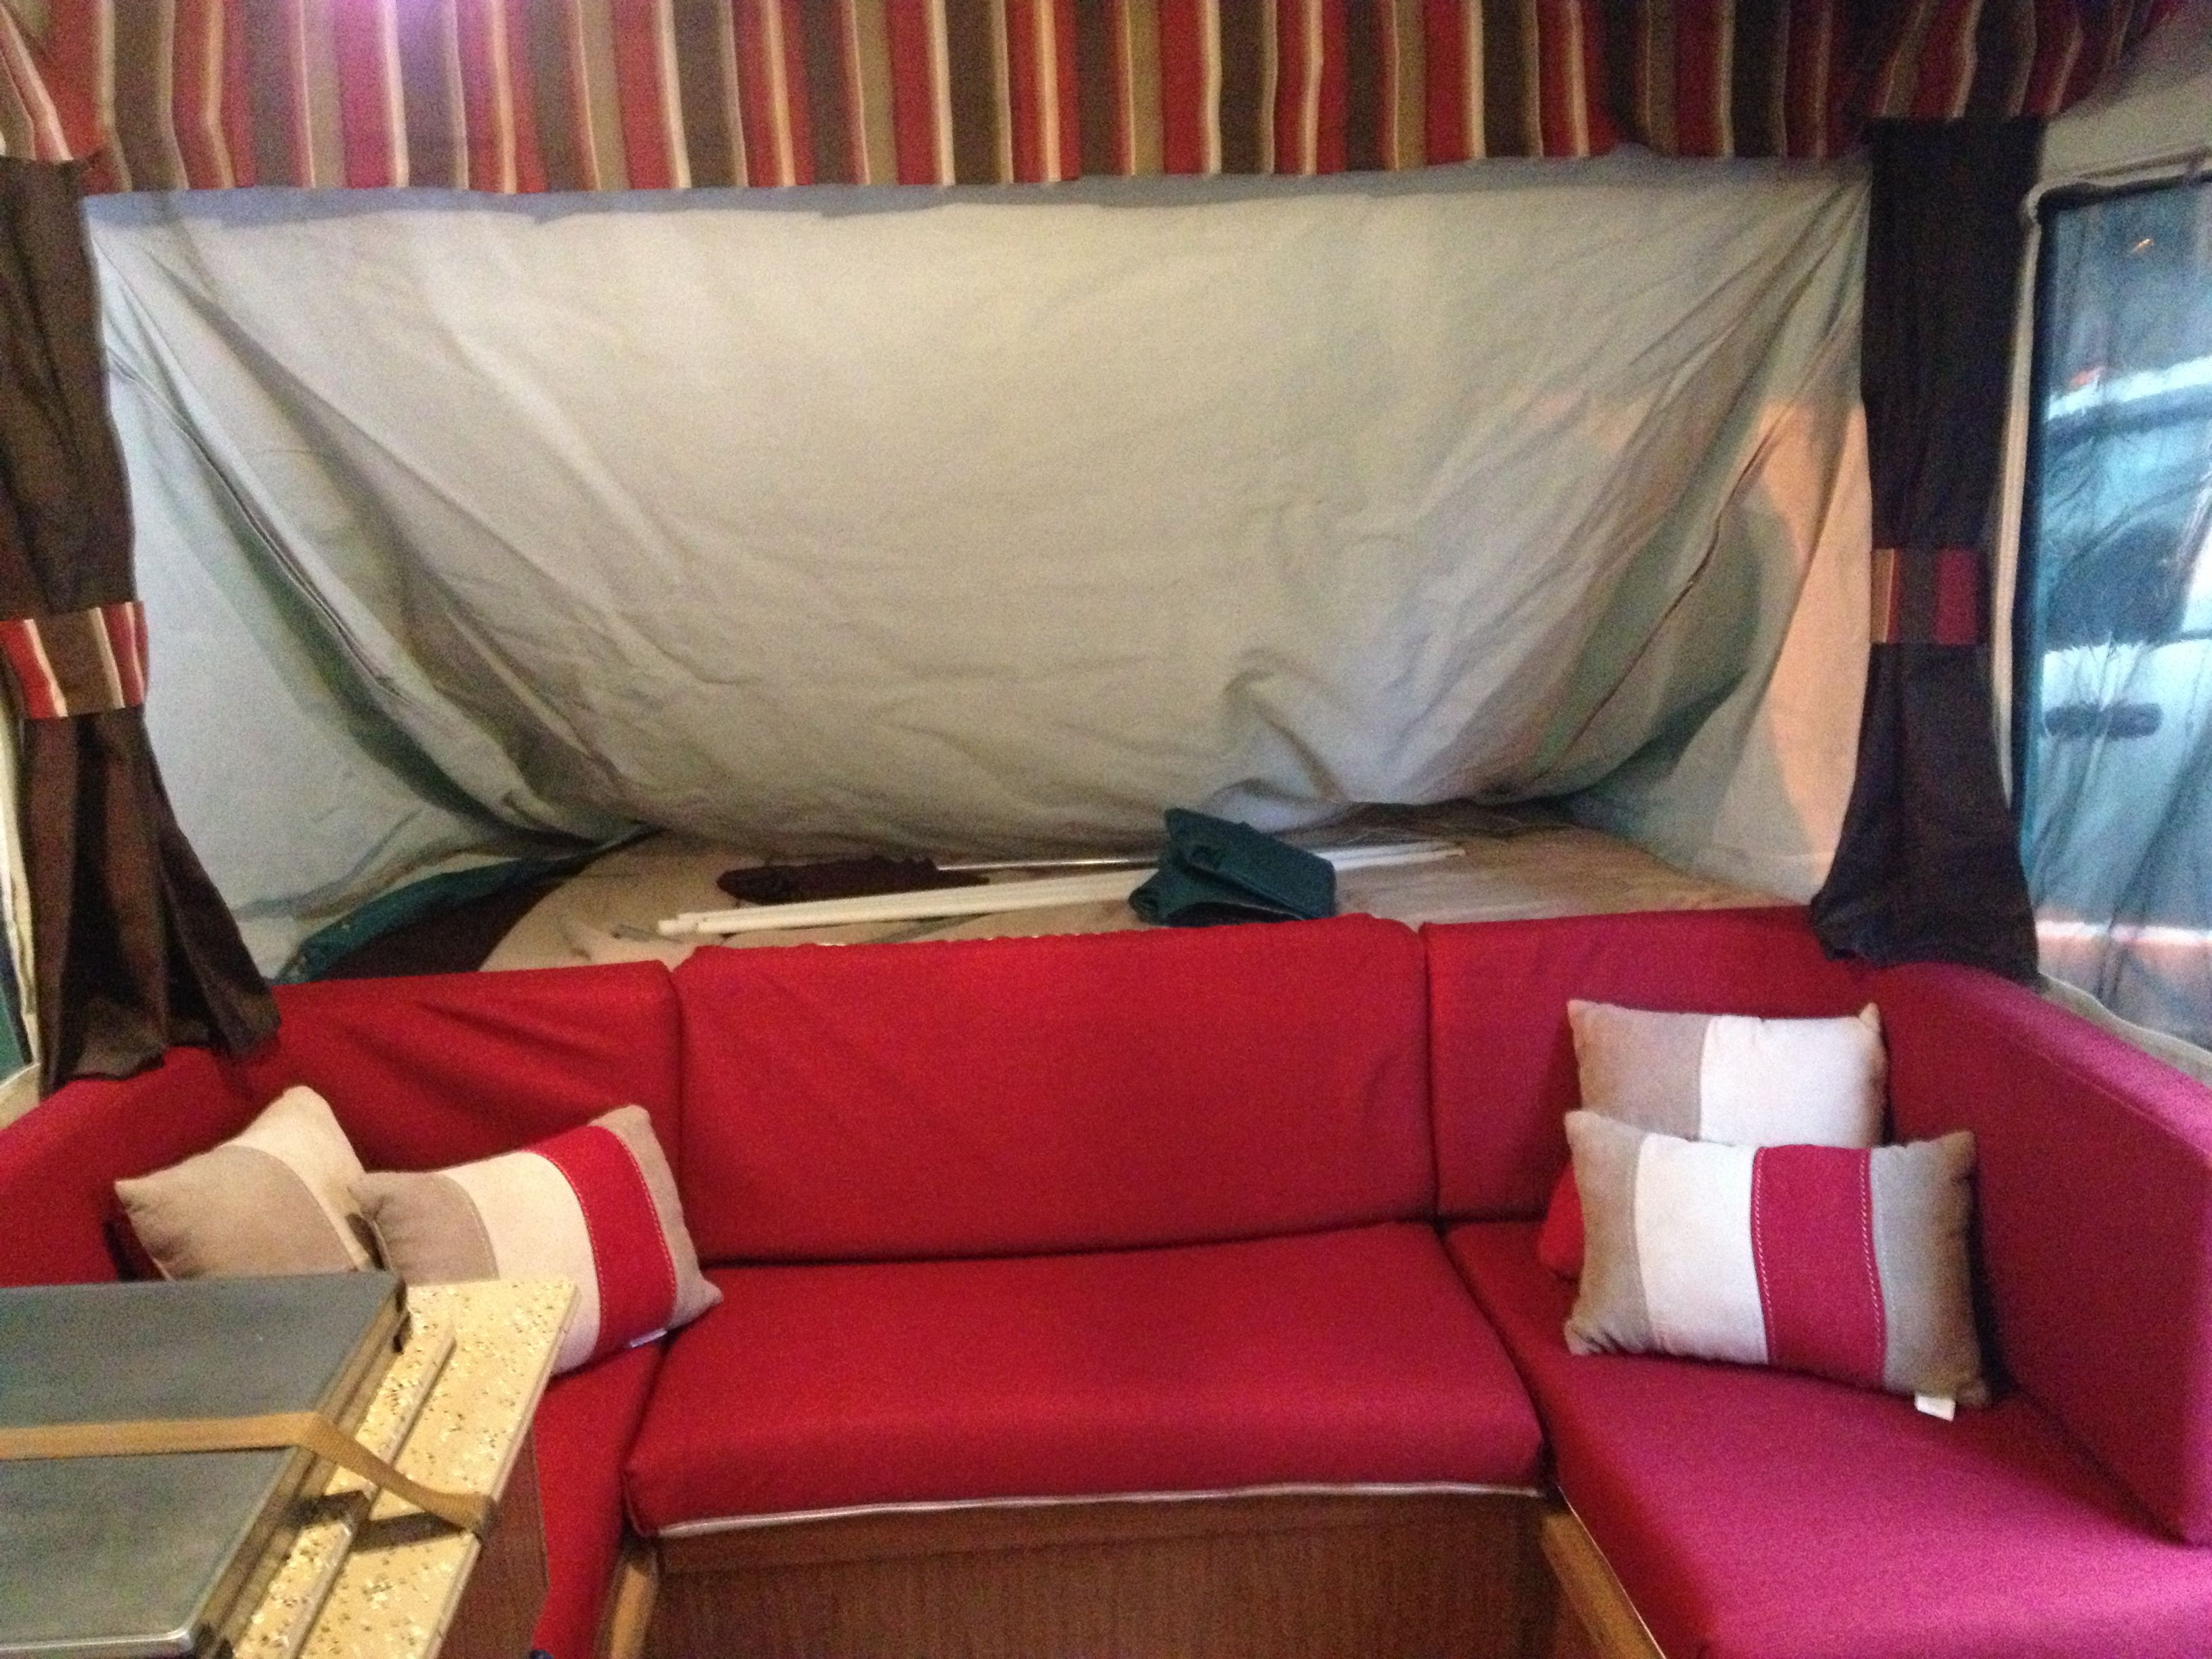 9 Awesome Pop Up Camper Decorating Pic Ideas. custom upholstery and curtains for our pop up camper   Mine All